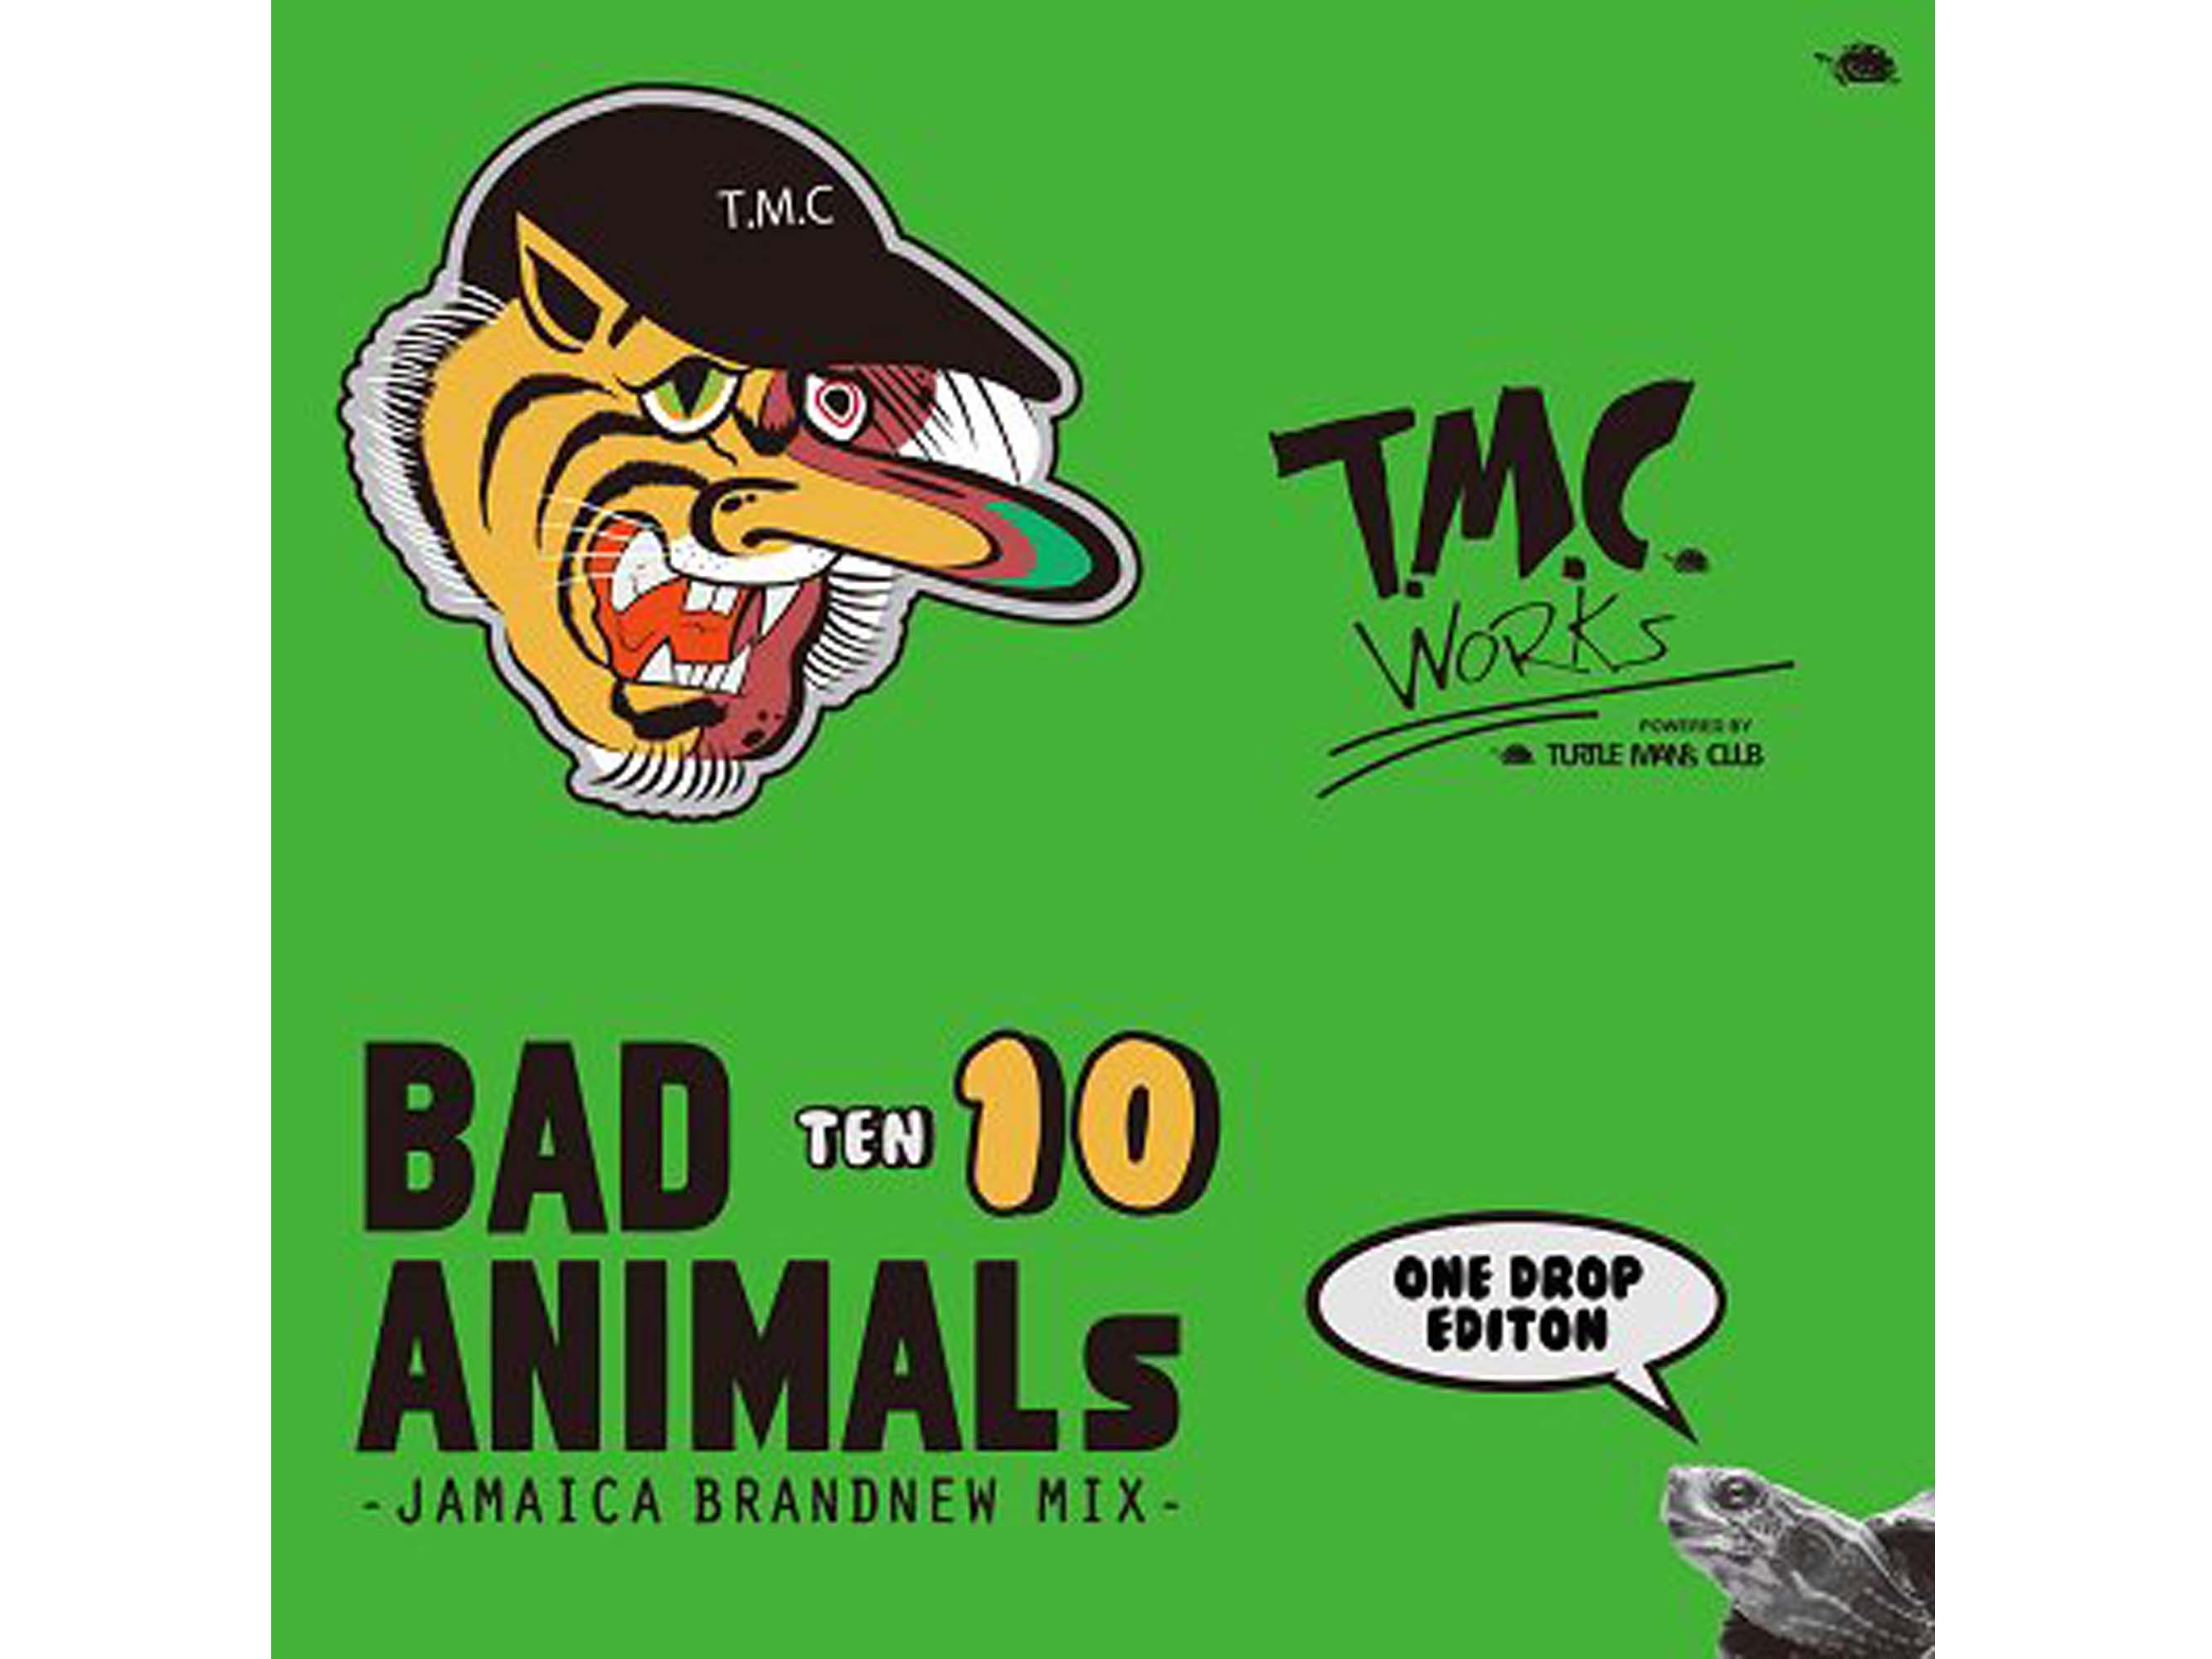 BAD ANIMALS vol.10 - TURTLEMANS CLUB